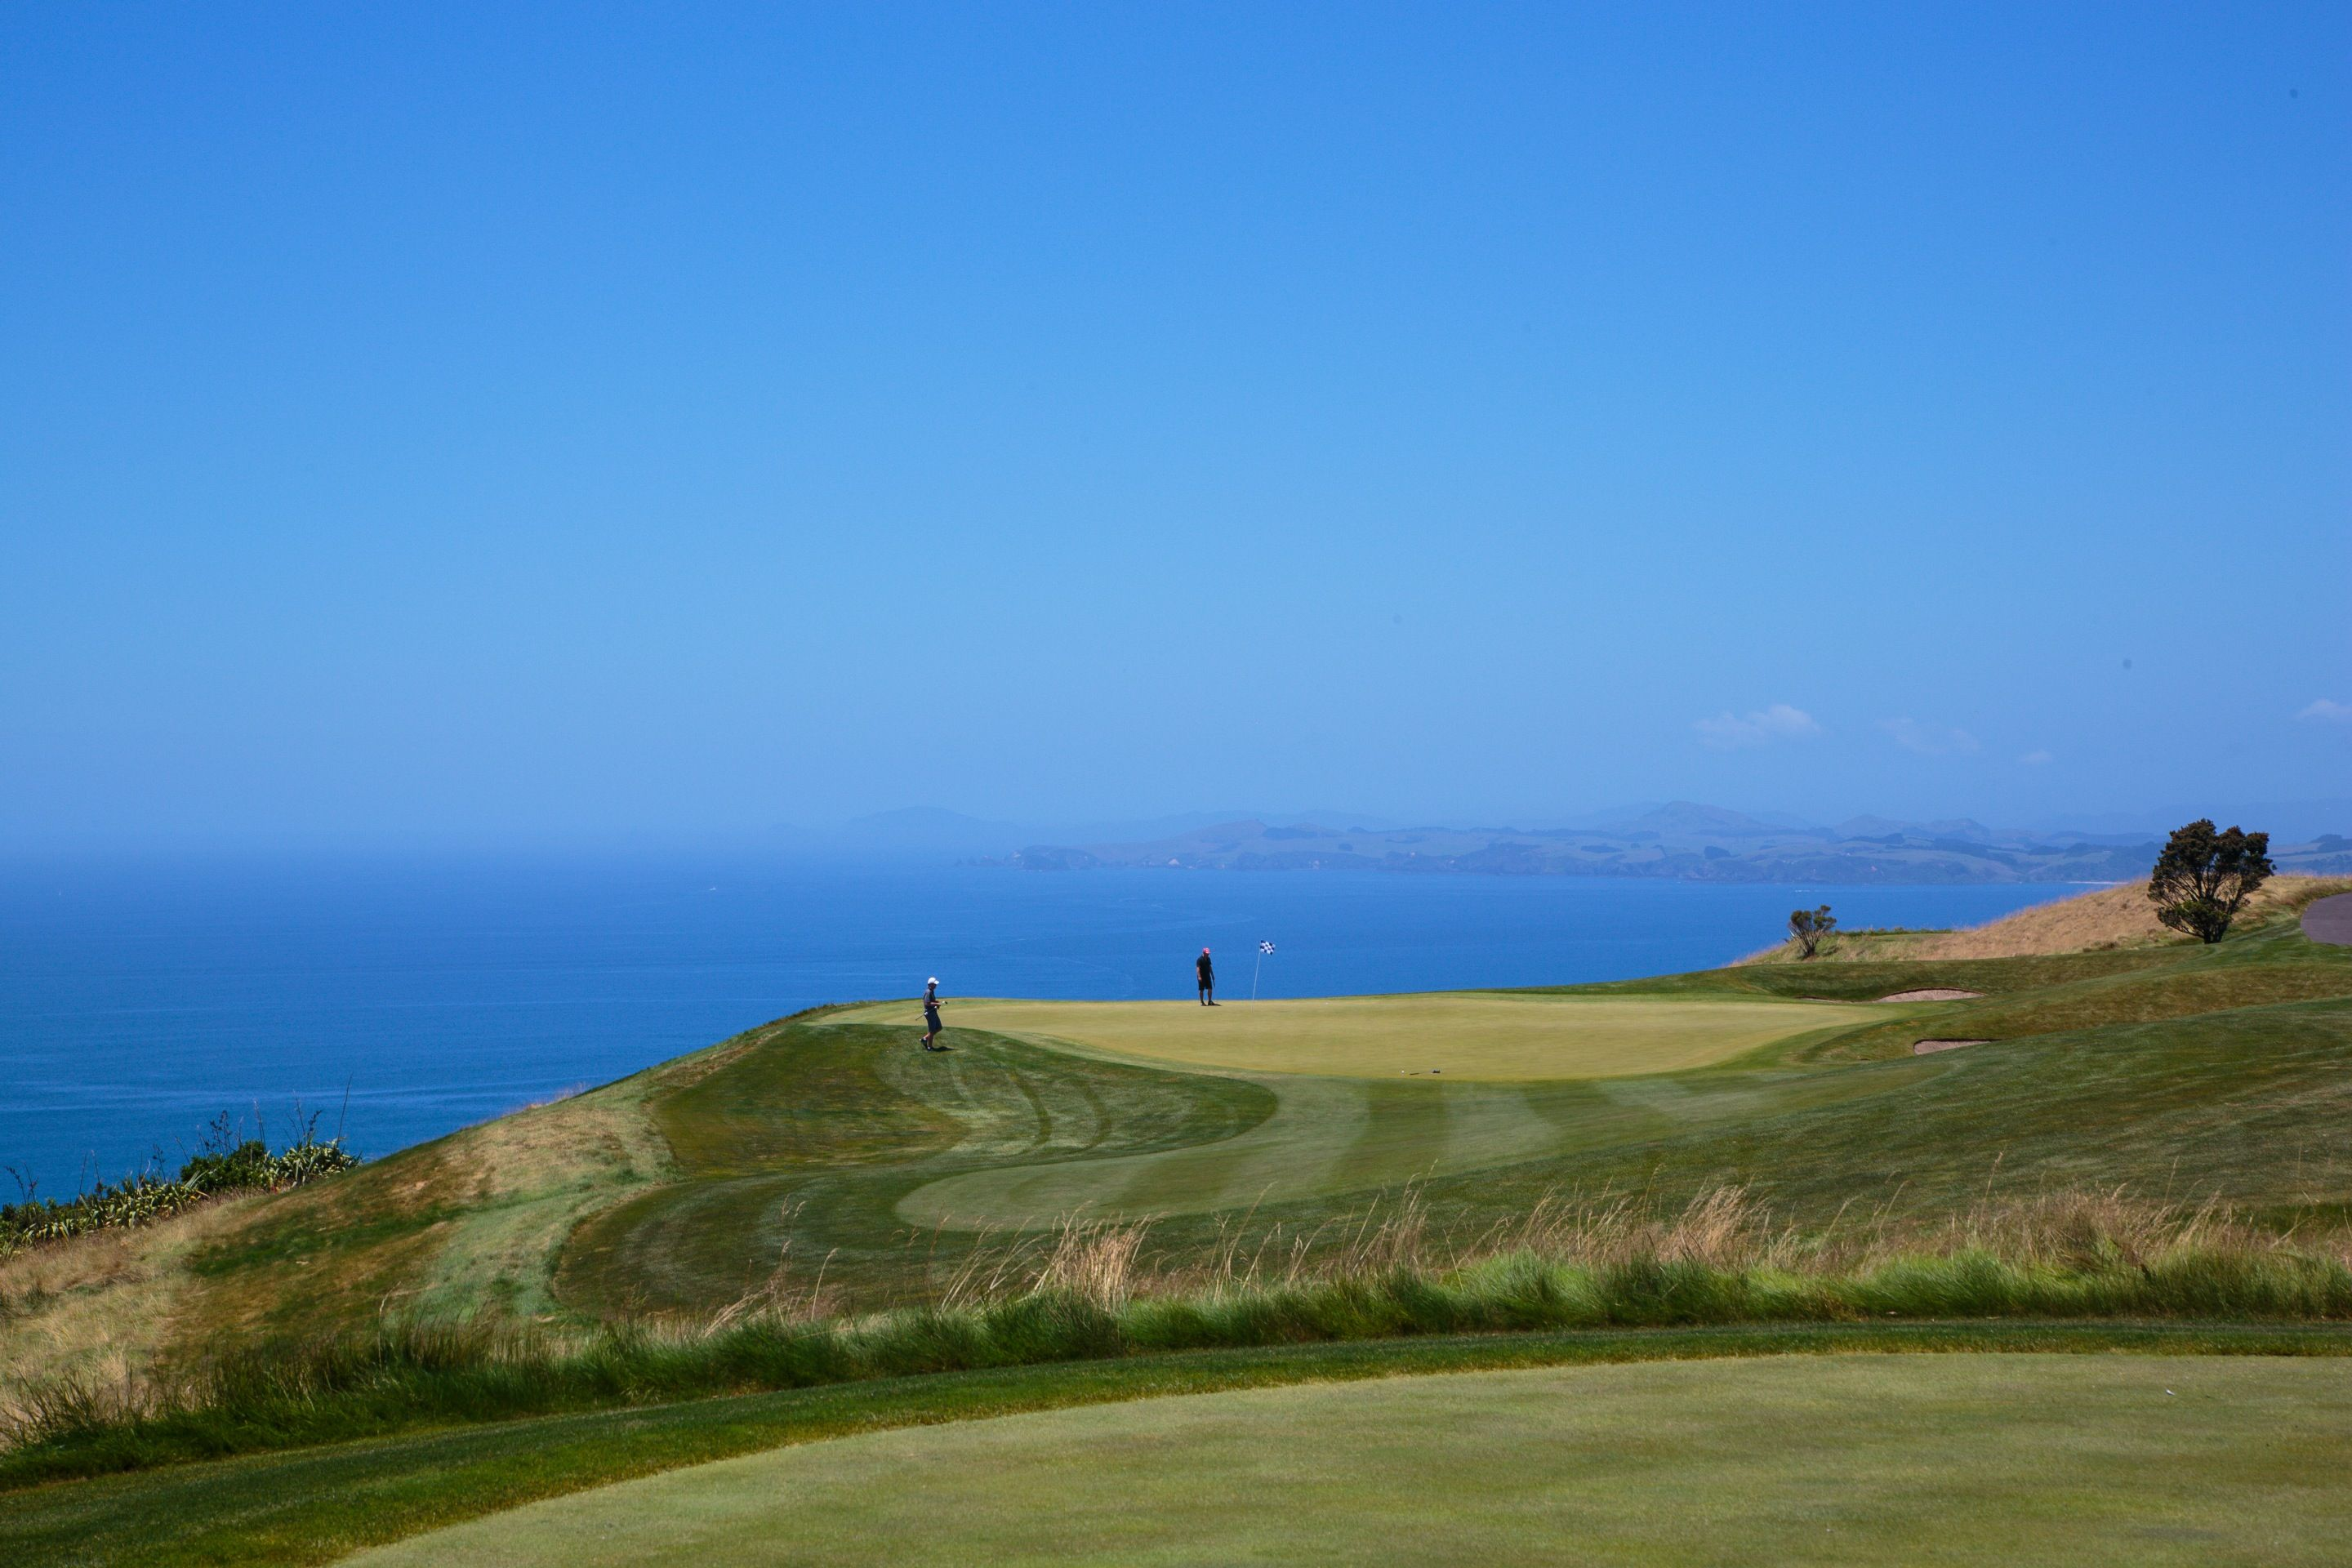 Nothing but you, the sea and a perfect game at Kauri Cliffs #NewZealand